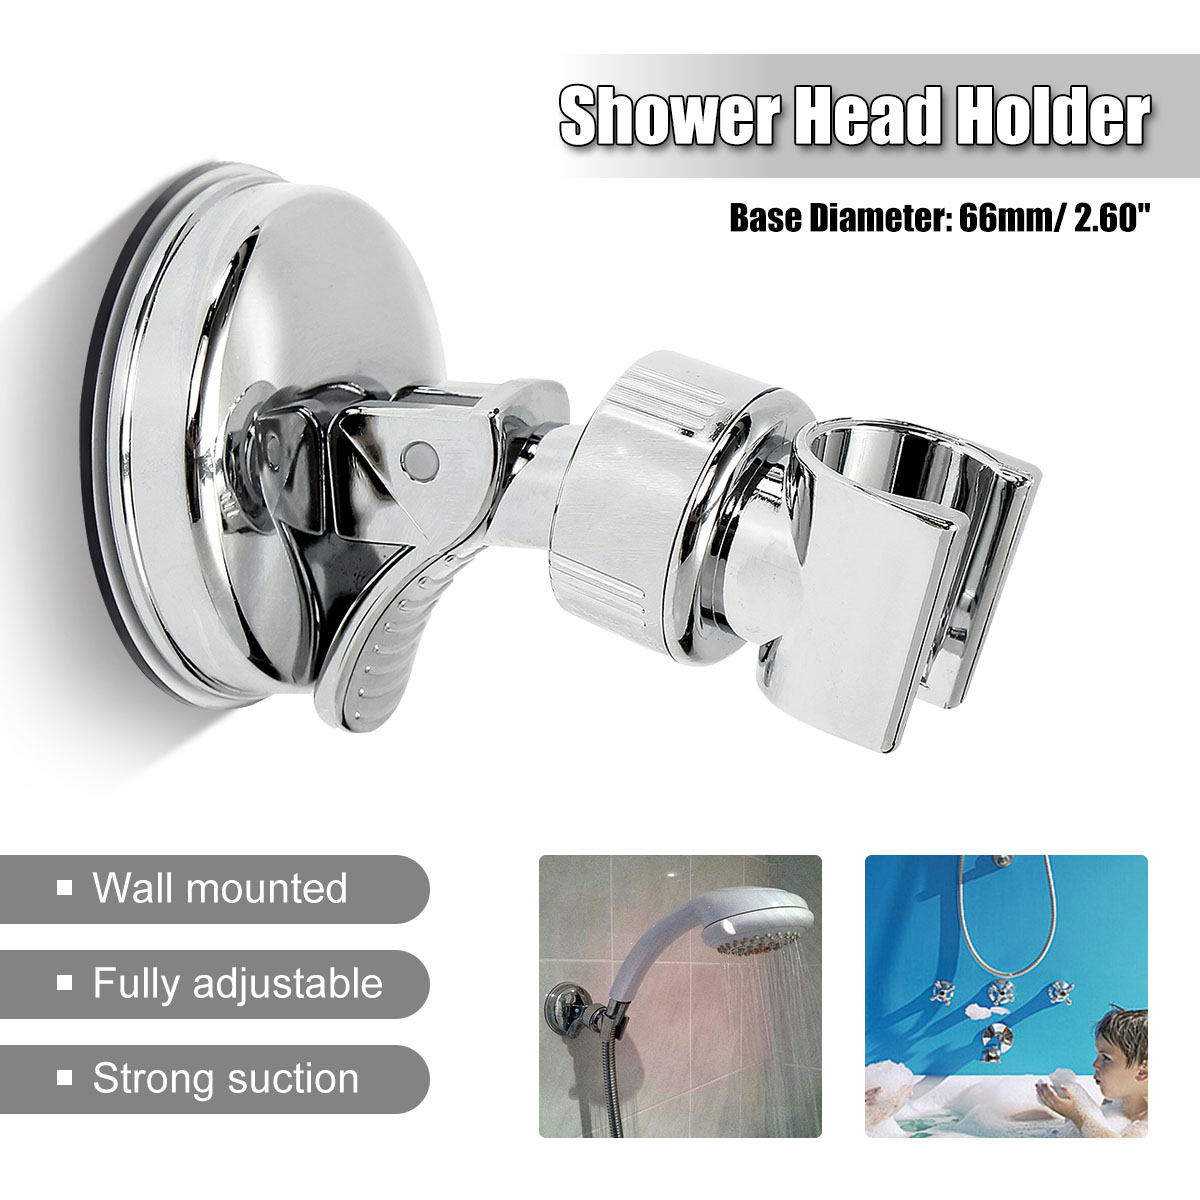 Shower Mounting Brackets Bathroom Adjustable Shower Head Holder Rack Bracket Suction Cup Wall Mounted Replacement Holder